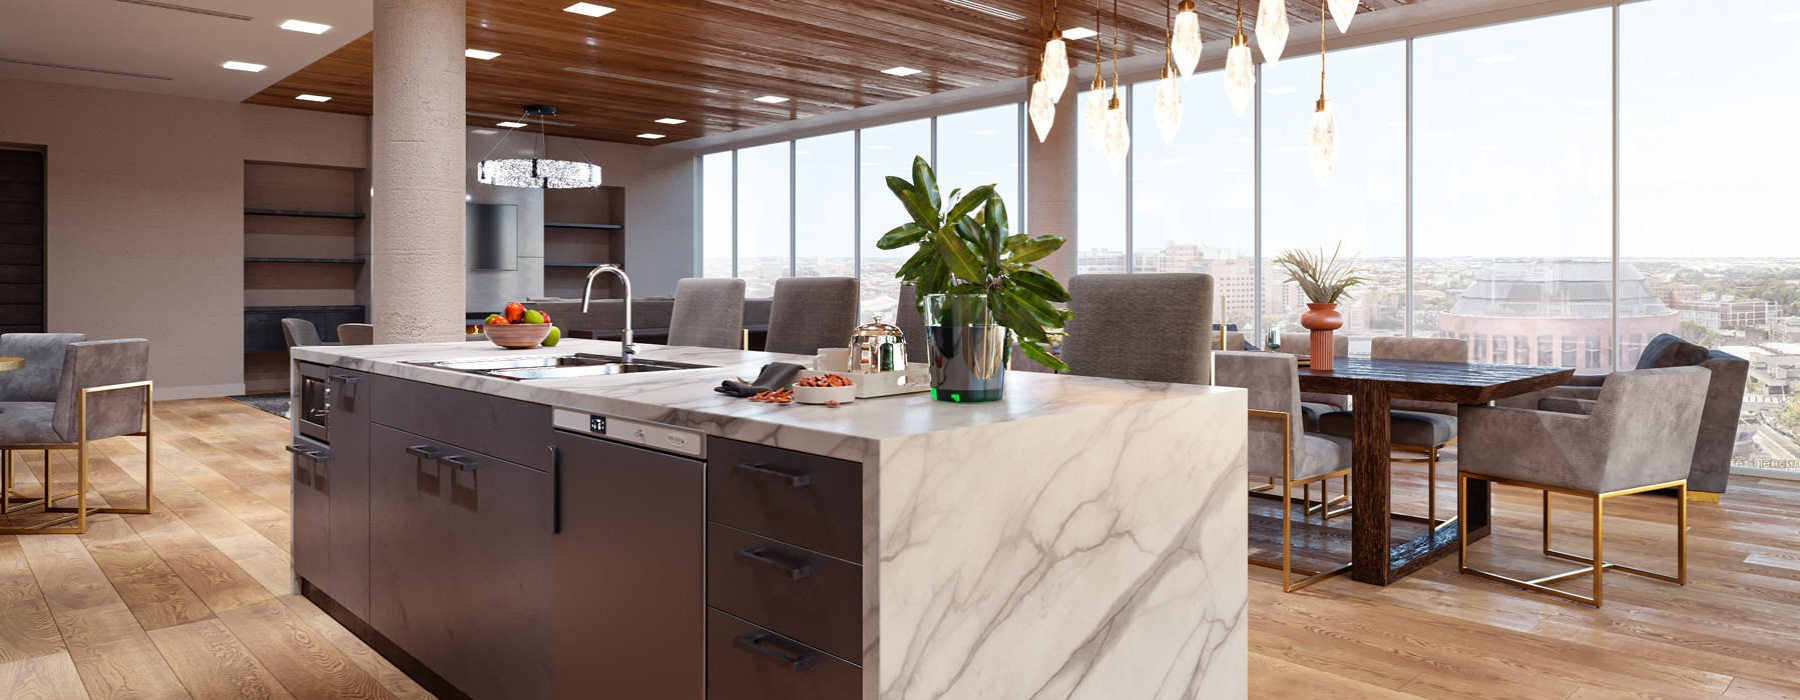 sky lounge rendering with kitchen, floor-to-ceiling windows and views of downtown